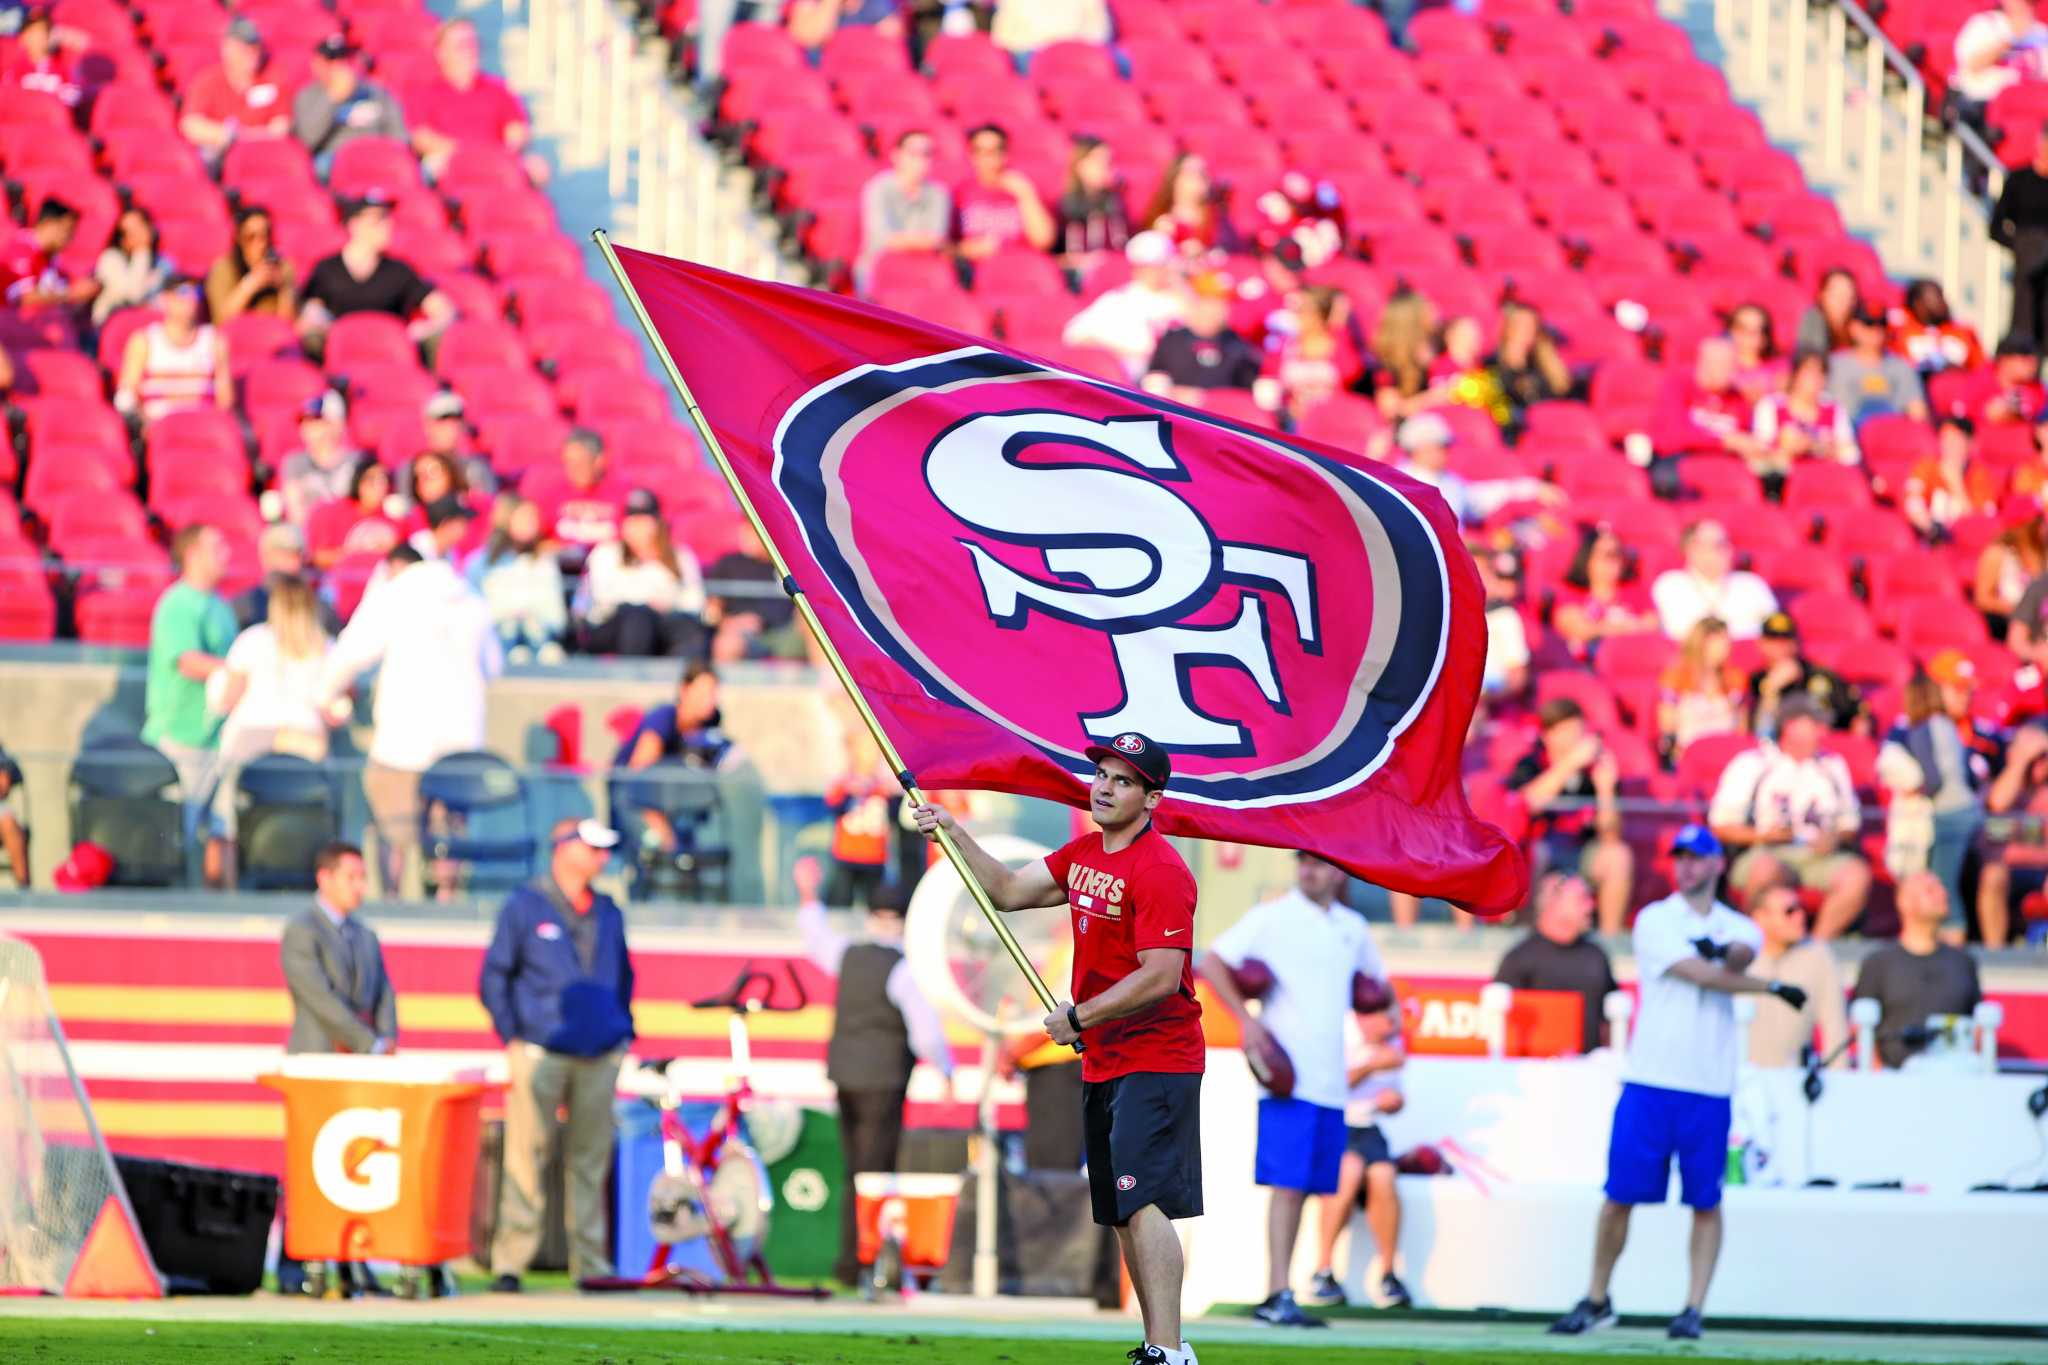 A man waves a flag before the San Francisco 49ers preseason game against the Denver Broncos at Levi's Stadium in Santa Clara, Calif. on Saturday, Aug. 19, 2017. (Mira Laing/Golden Gate Xpress)